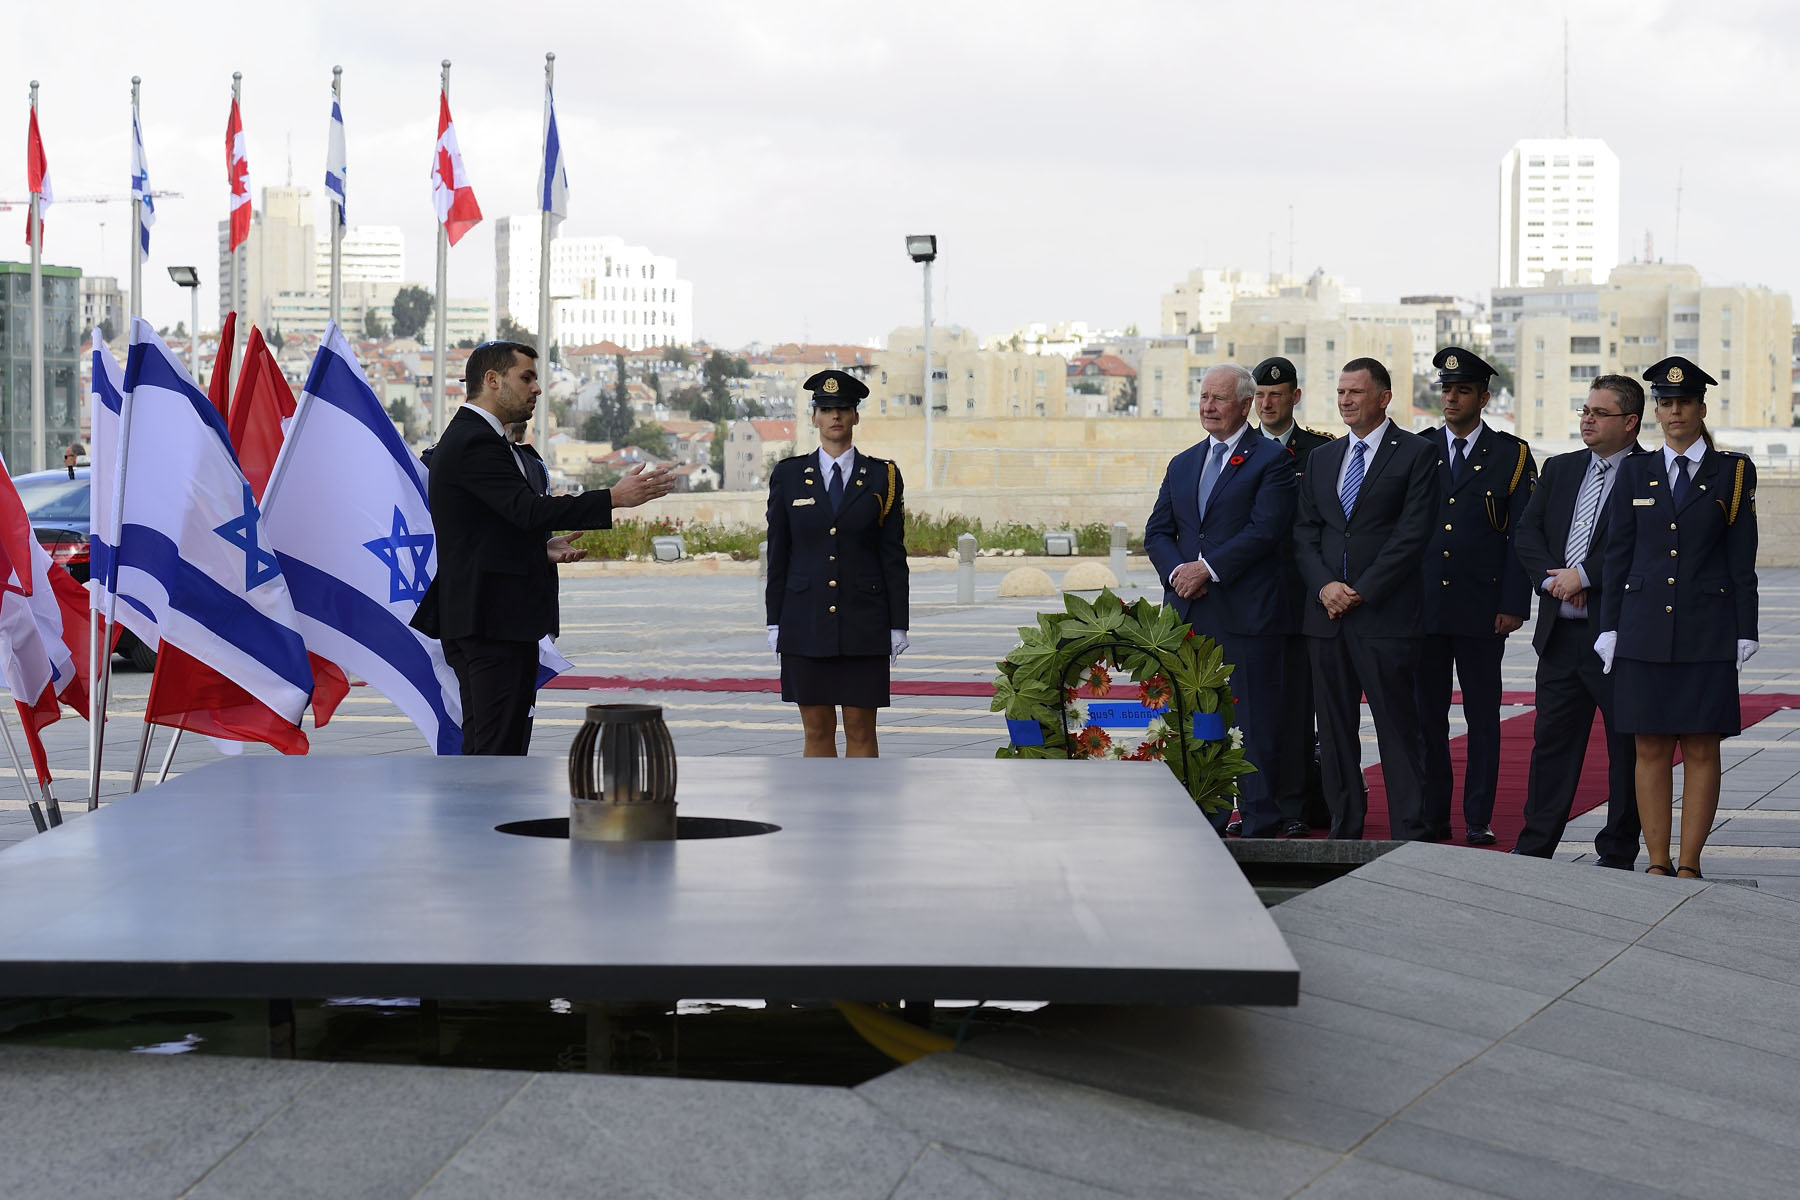 The Governor General visited the Israeli Legislative Assembly.